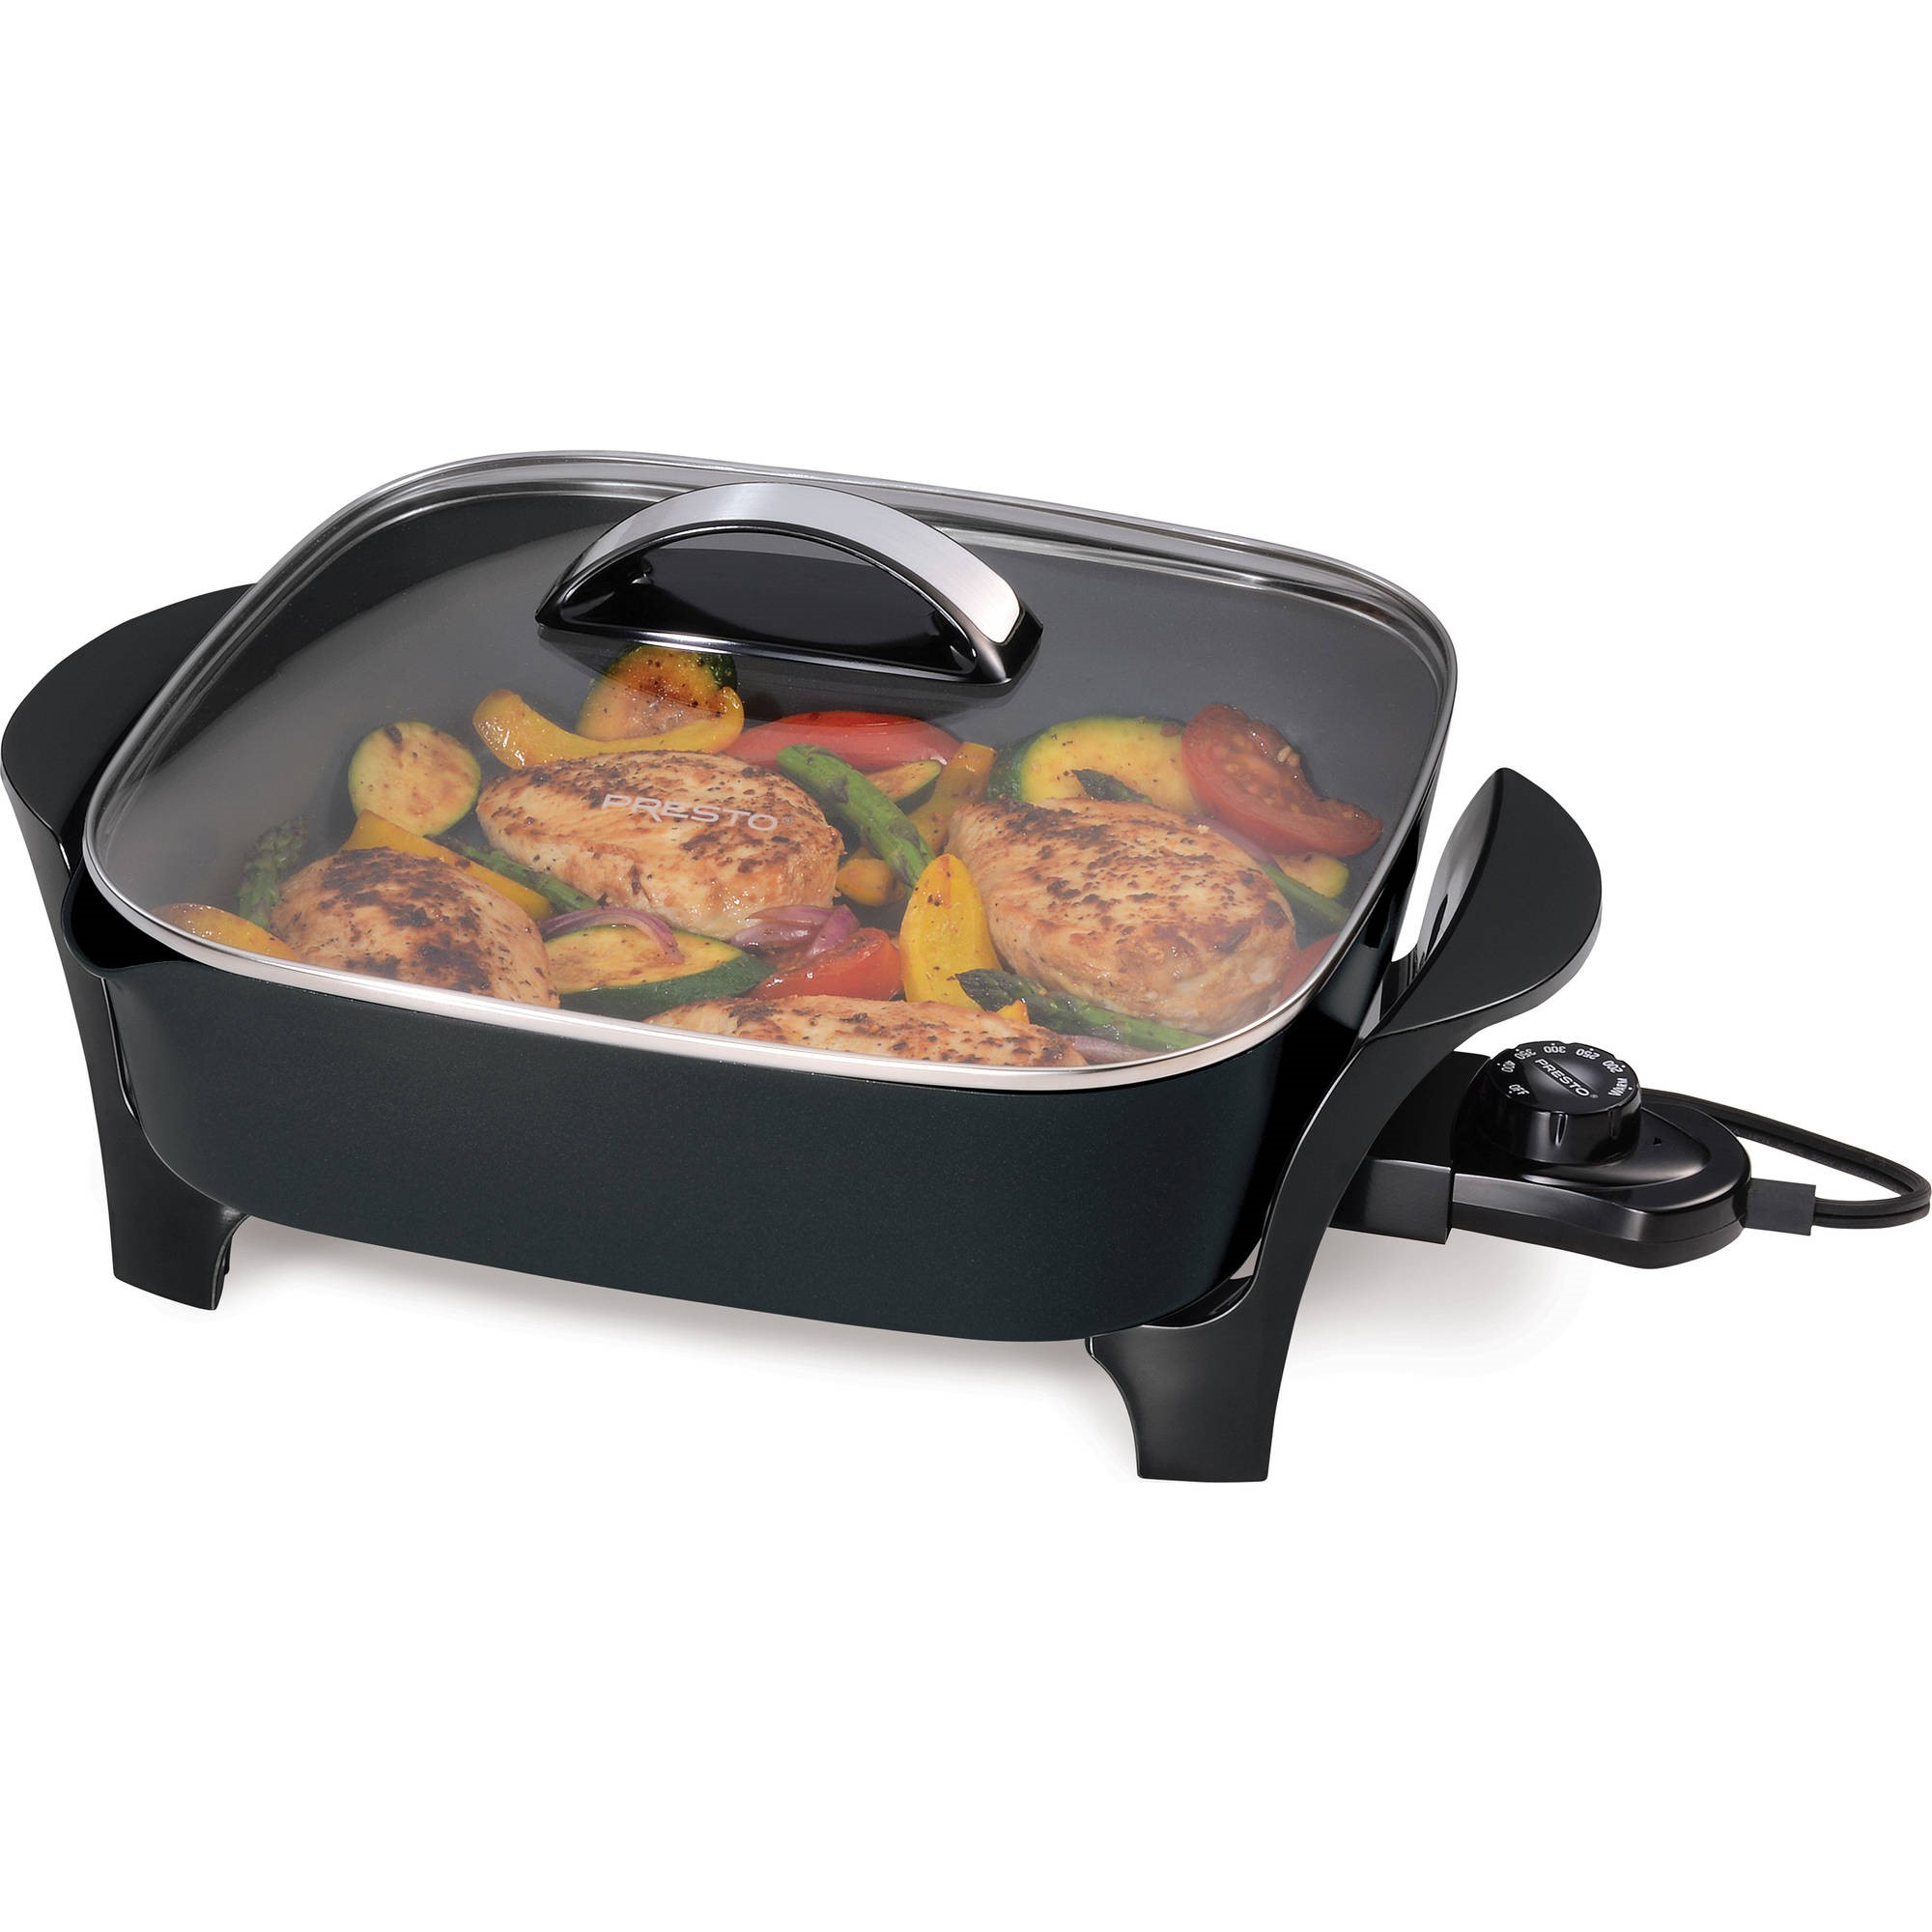 """Presto 12"""" Electric Skillet with Glass Cover"""